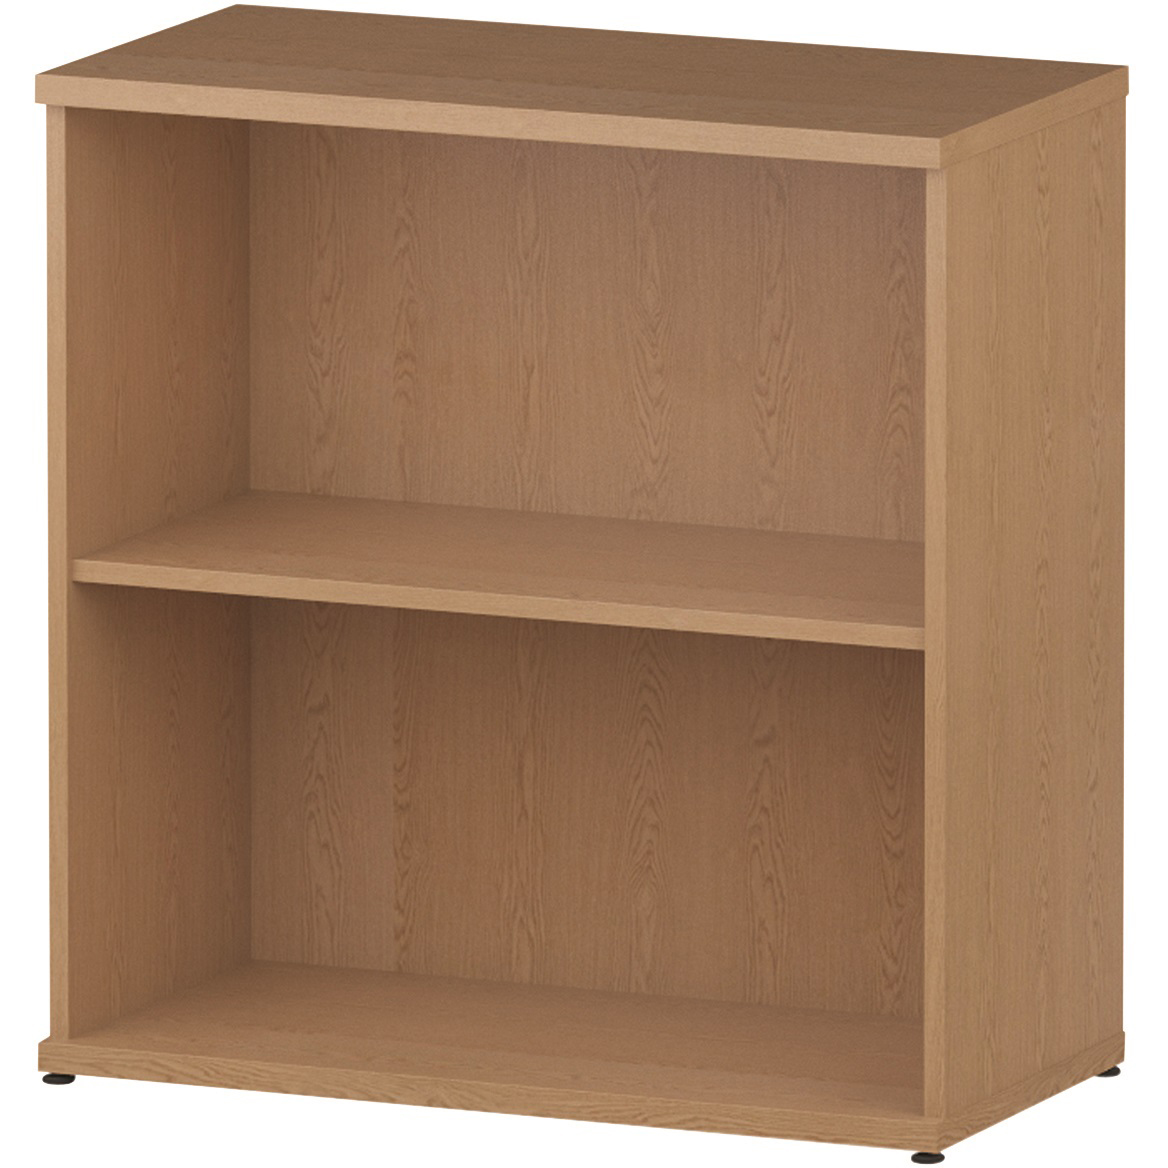 Trexus Office Low Bookcase 800x400x800mm 1 Shelf Oak Ref I000757